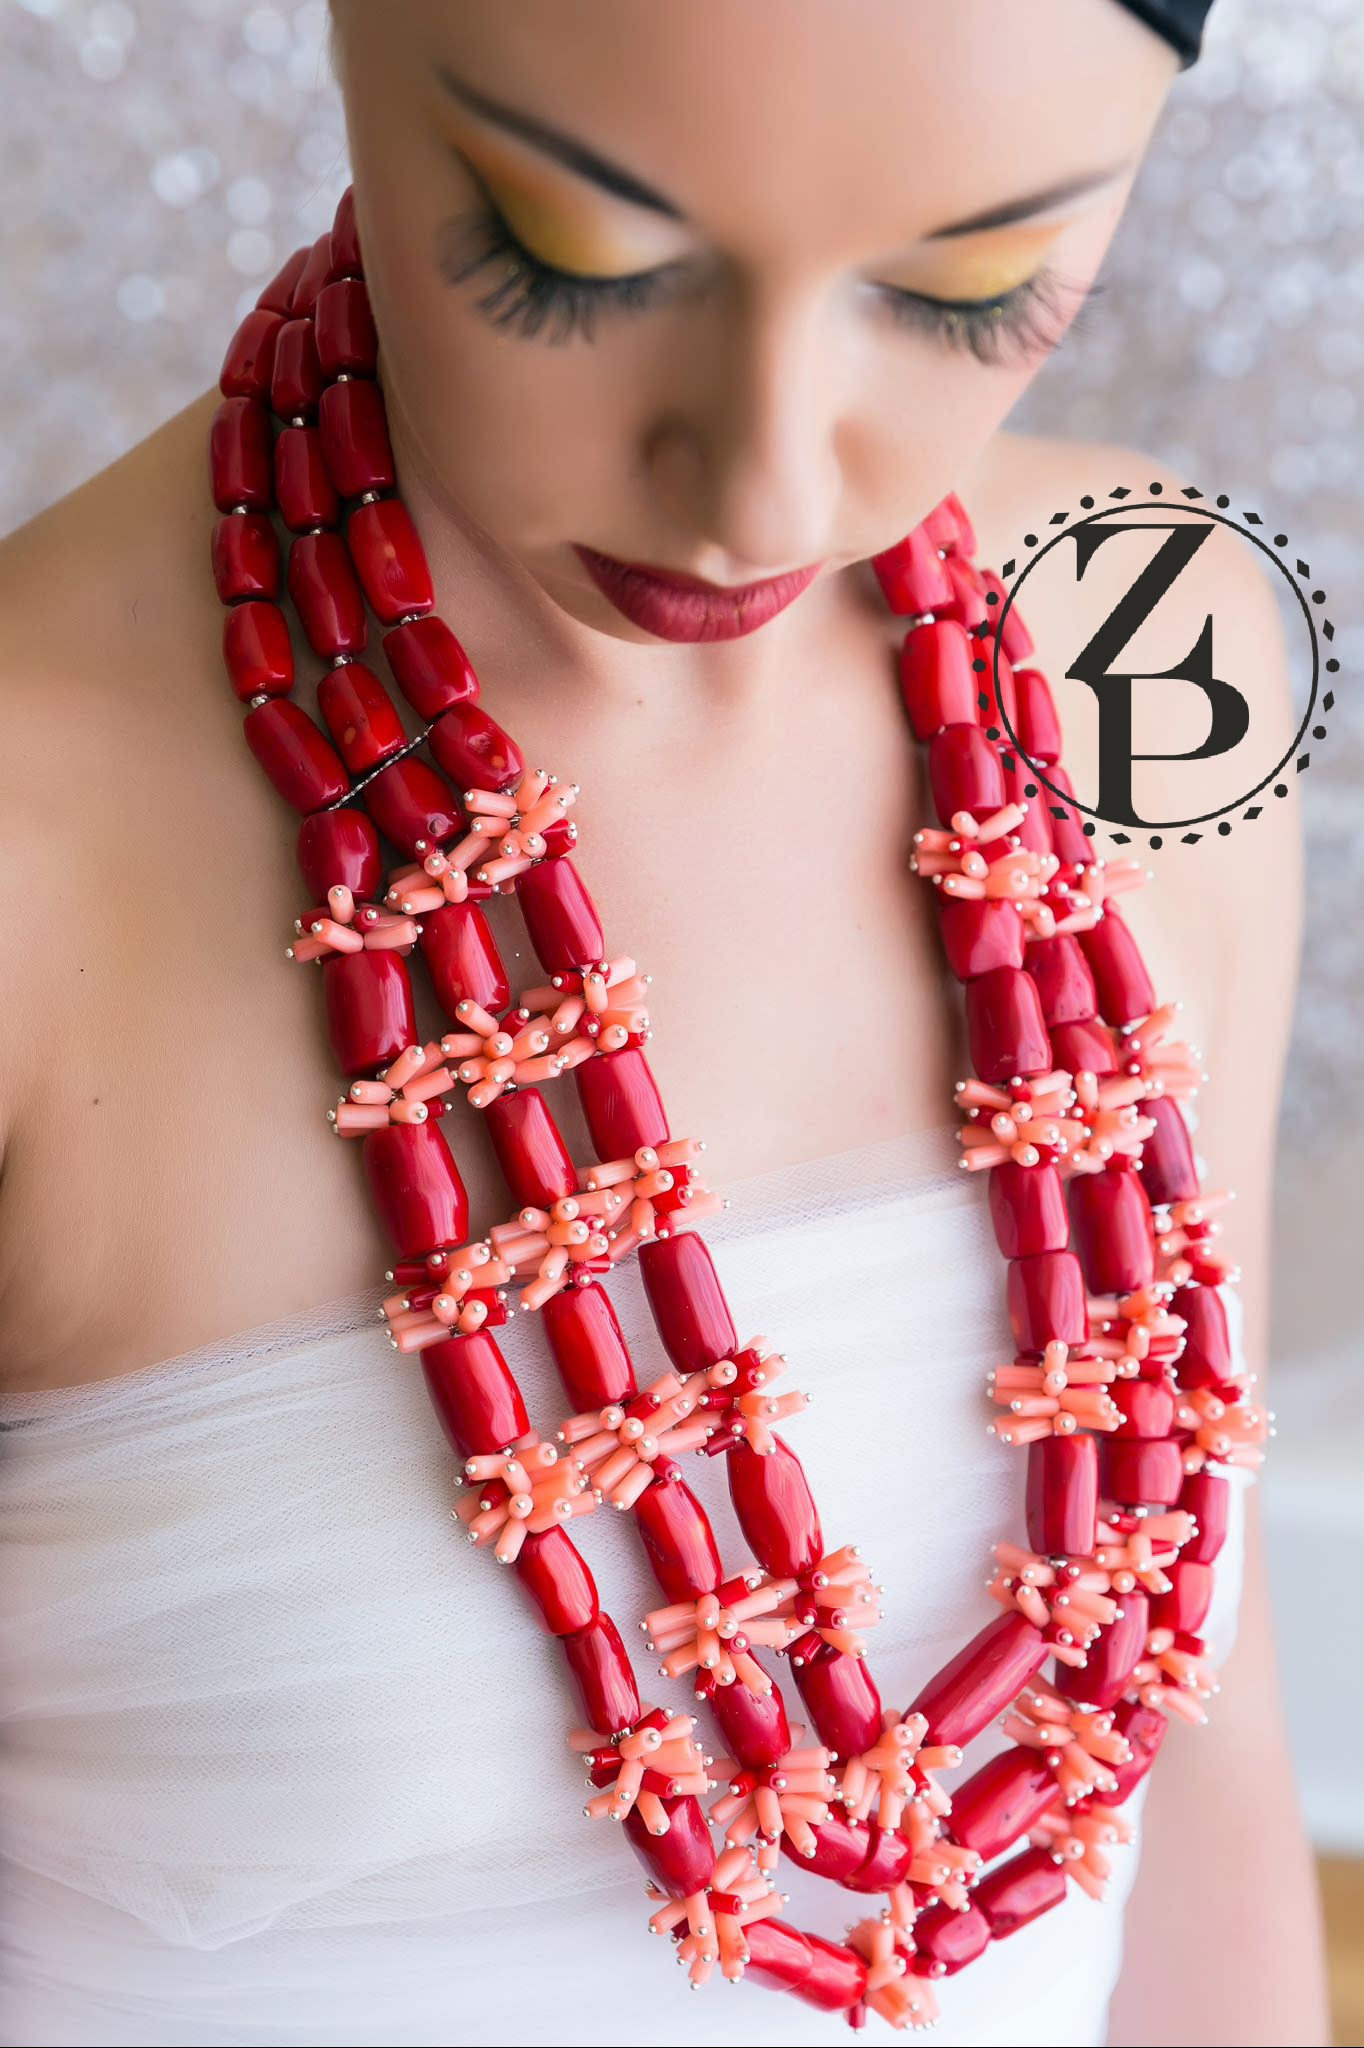 editorial-photo-shoot-zuri-perle-traditional-nigerian-wedding-jewelry-handcrafted-red-coral-jewelry.jpg